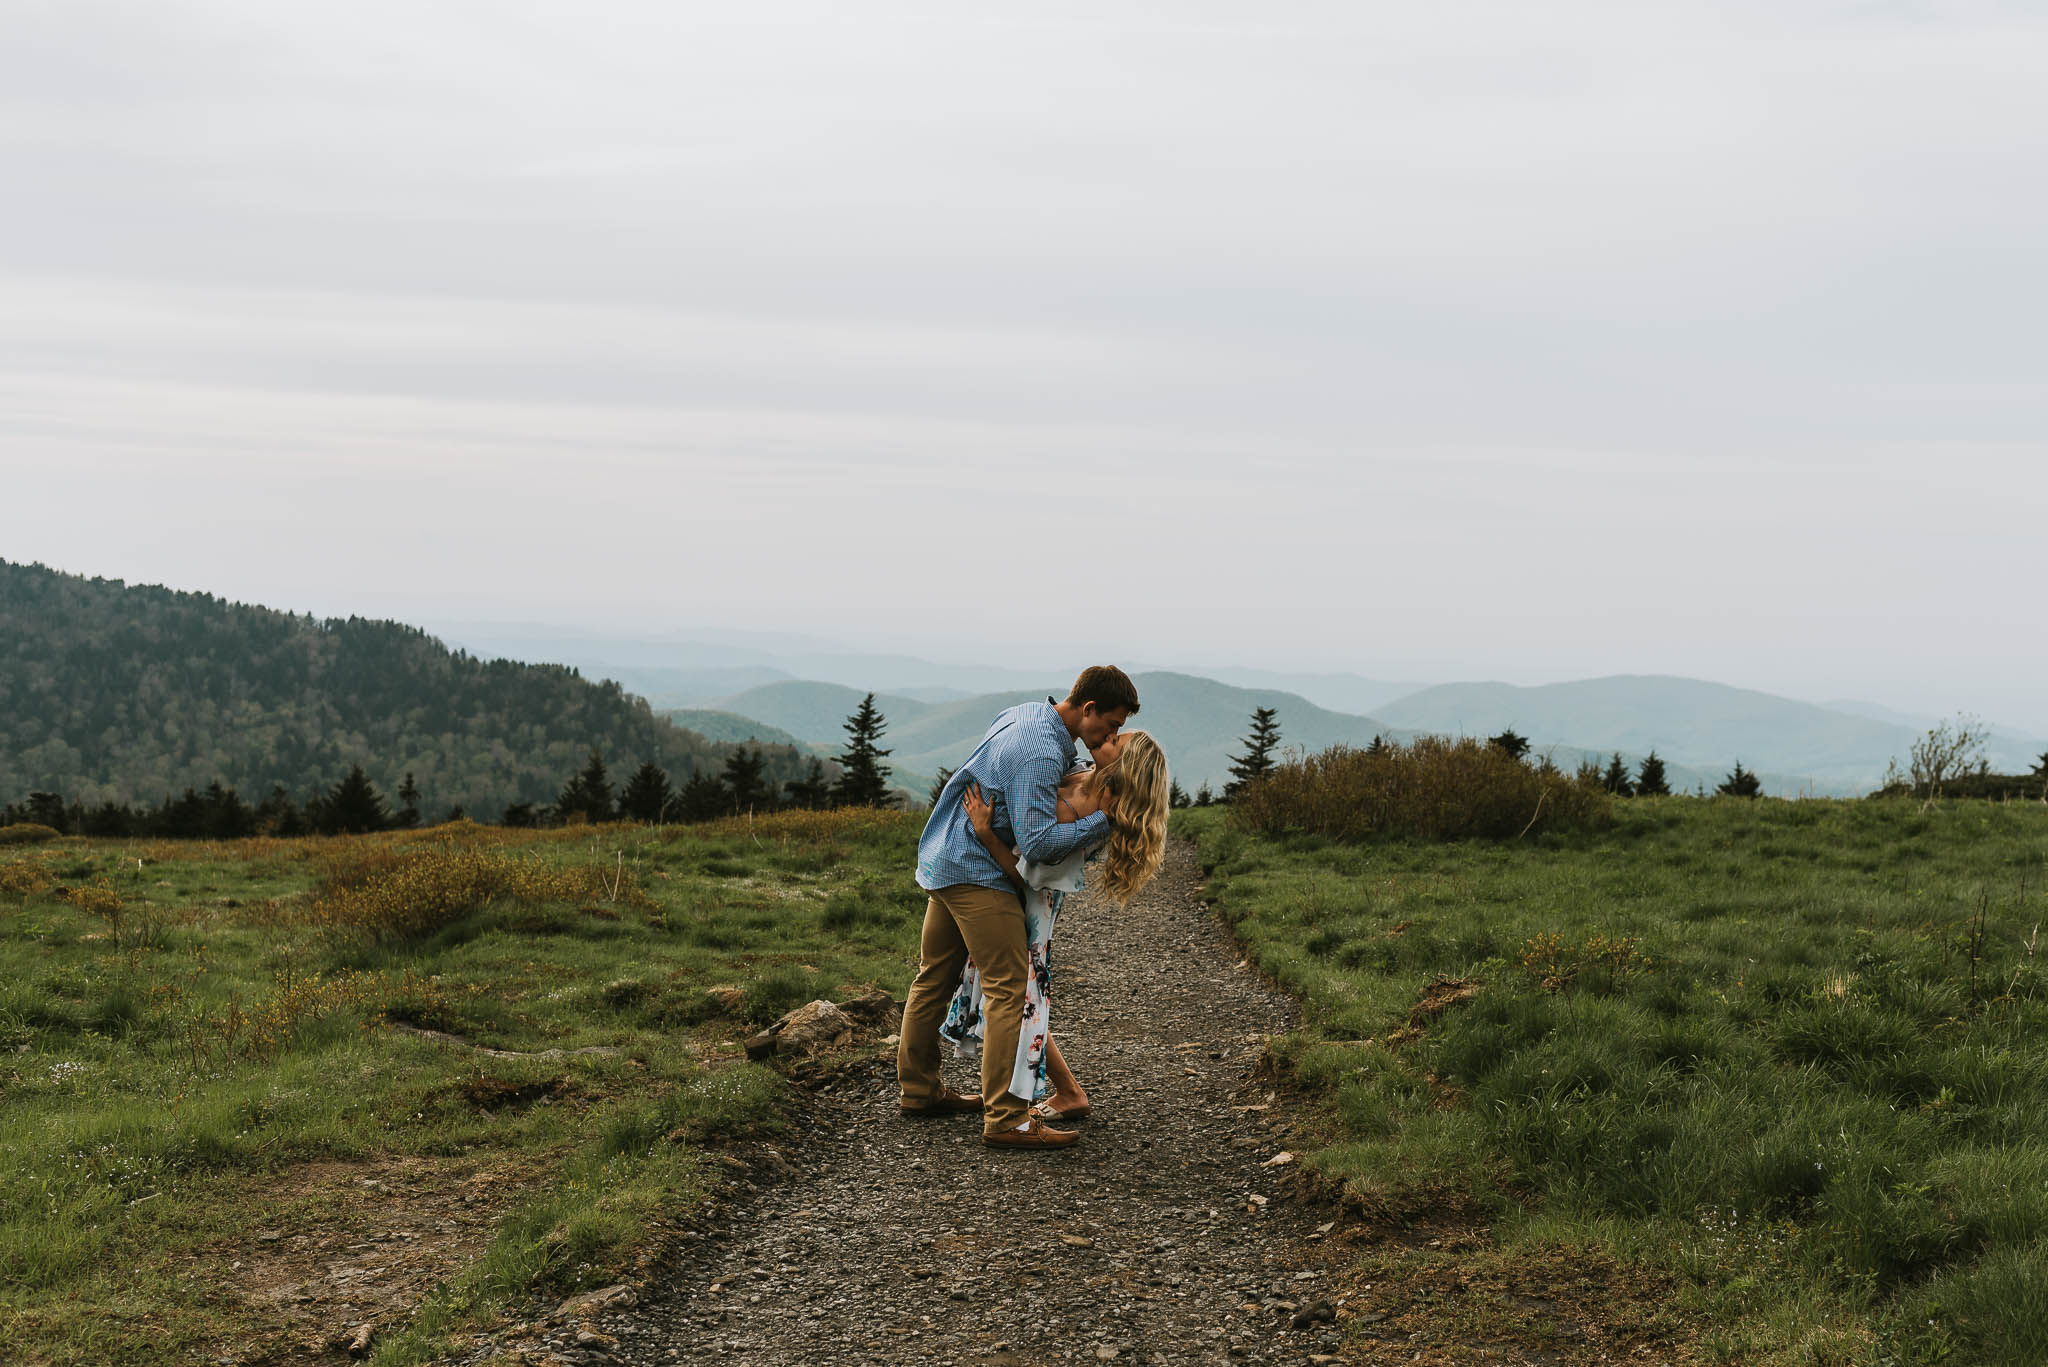 Roan Mountain Engagement Session Northeast Tennessee Wedding Photographers, East Tennessee Wedding Photographers, Kingsport, TN Wedding Photographers, Knoxville, TN Wedding Photographers (1 of 1)-18.jpg